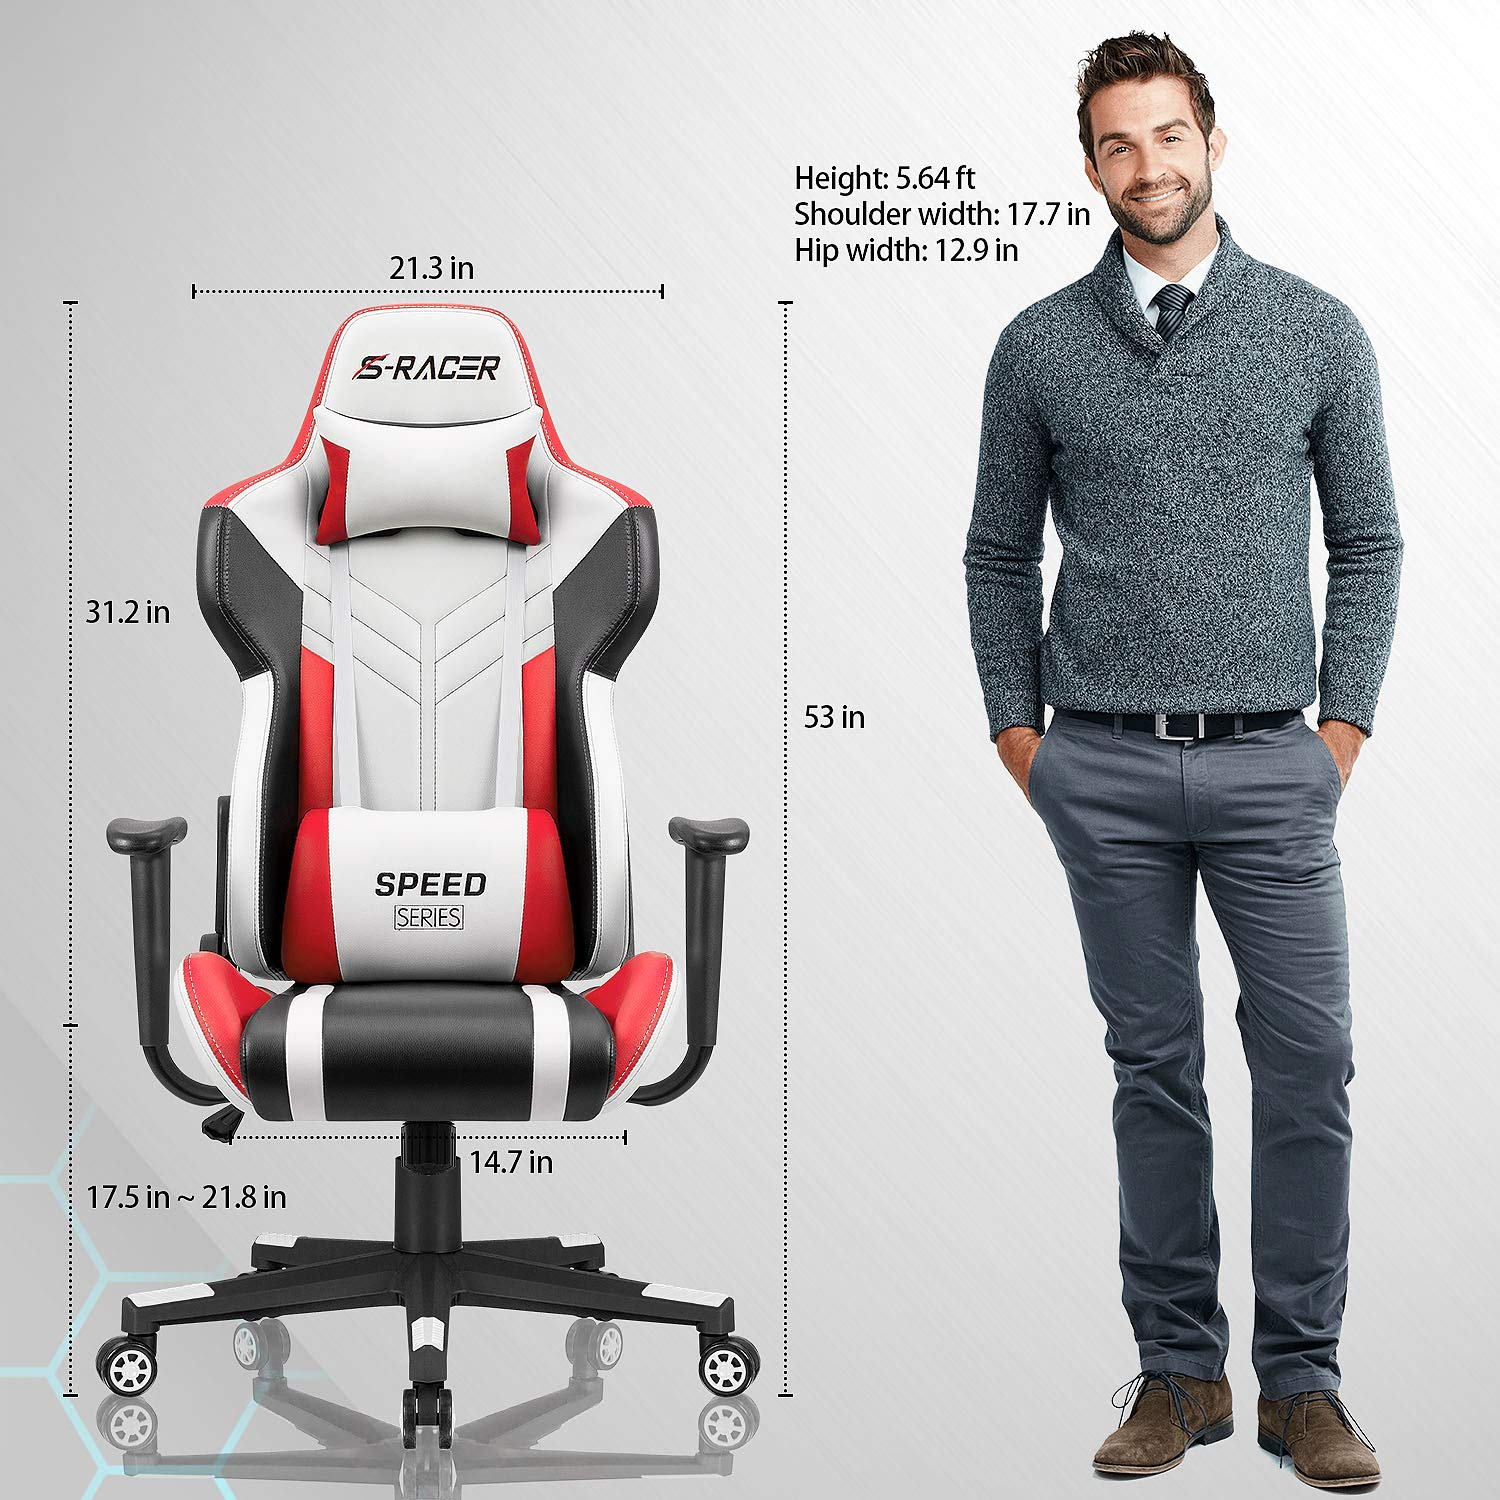 Homall Gaming Chair Racing Style High-Back PU Leather Office Chair Computer Desk Chair Executive and Ergonomic Swivel Chair with Headrest and Lumbar Support (White/Red) by Homall (Image #6)